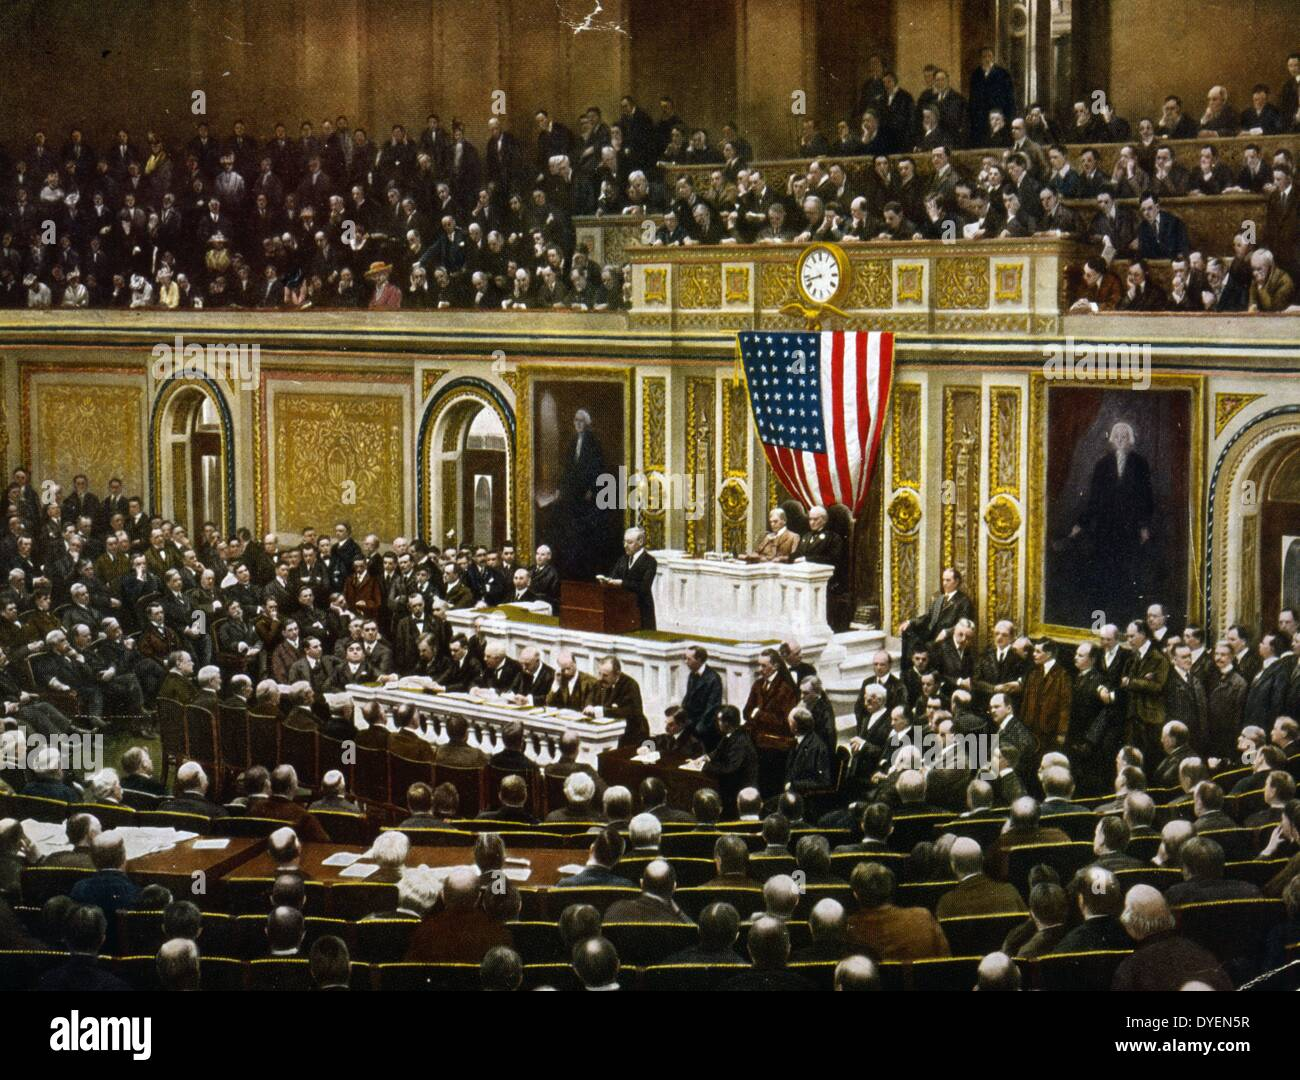 American president, Woodrow Wilson asking Congress to declare war on Germany, in 1917. - Stock Image